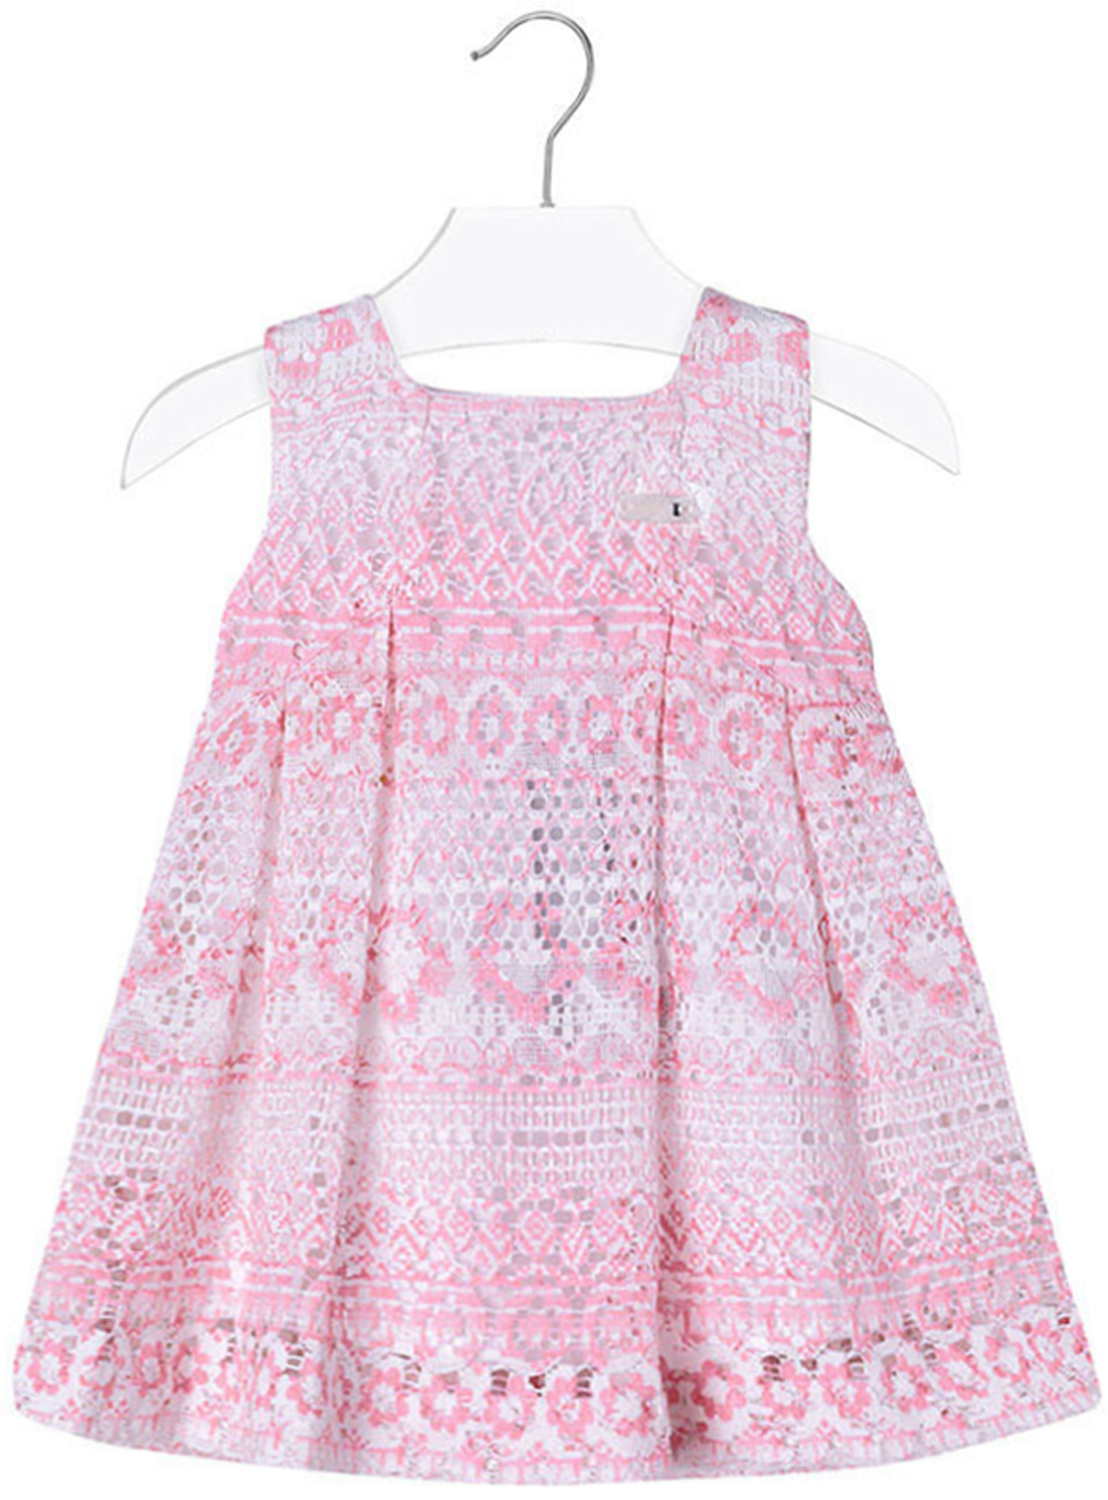 Mayoral Baby Girls 3M-24M Orchid Pink Colorblock Tiers Social Dress